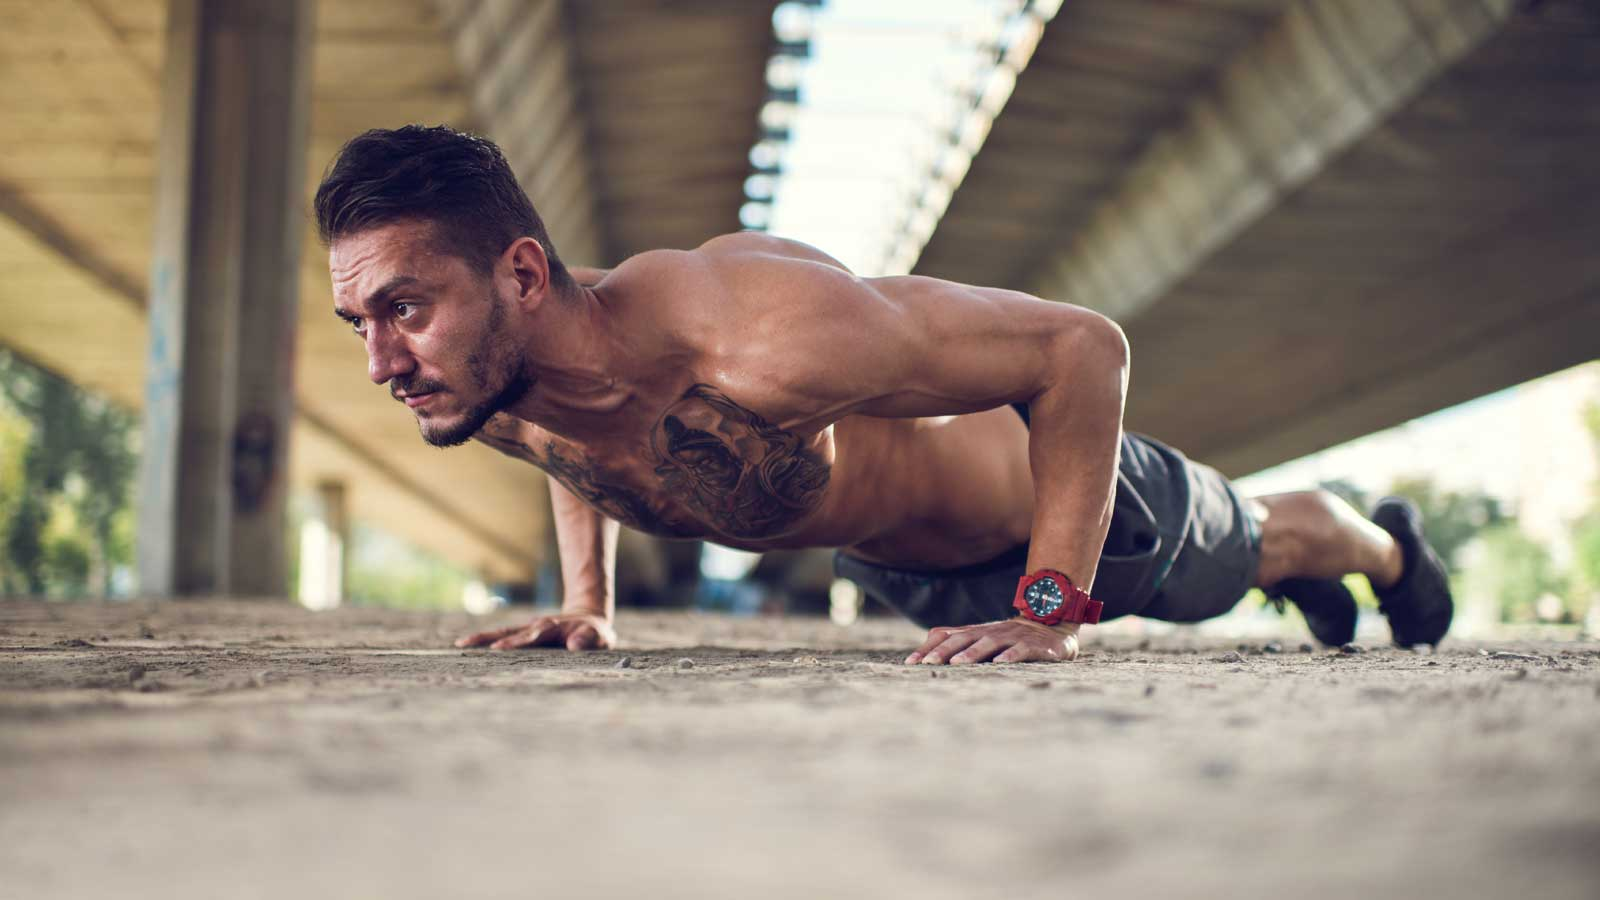 The Best 20-Minute Bodyweight Back Workout for Busy Guys